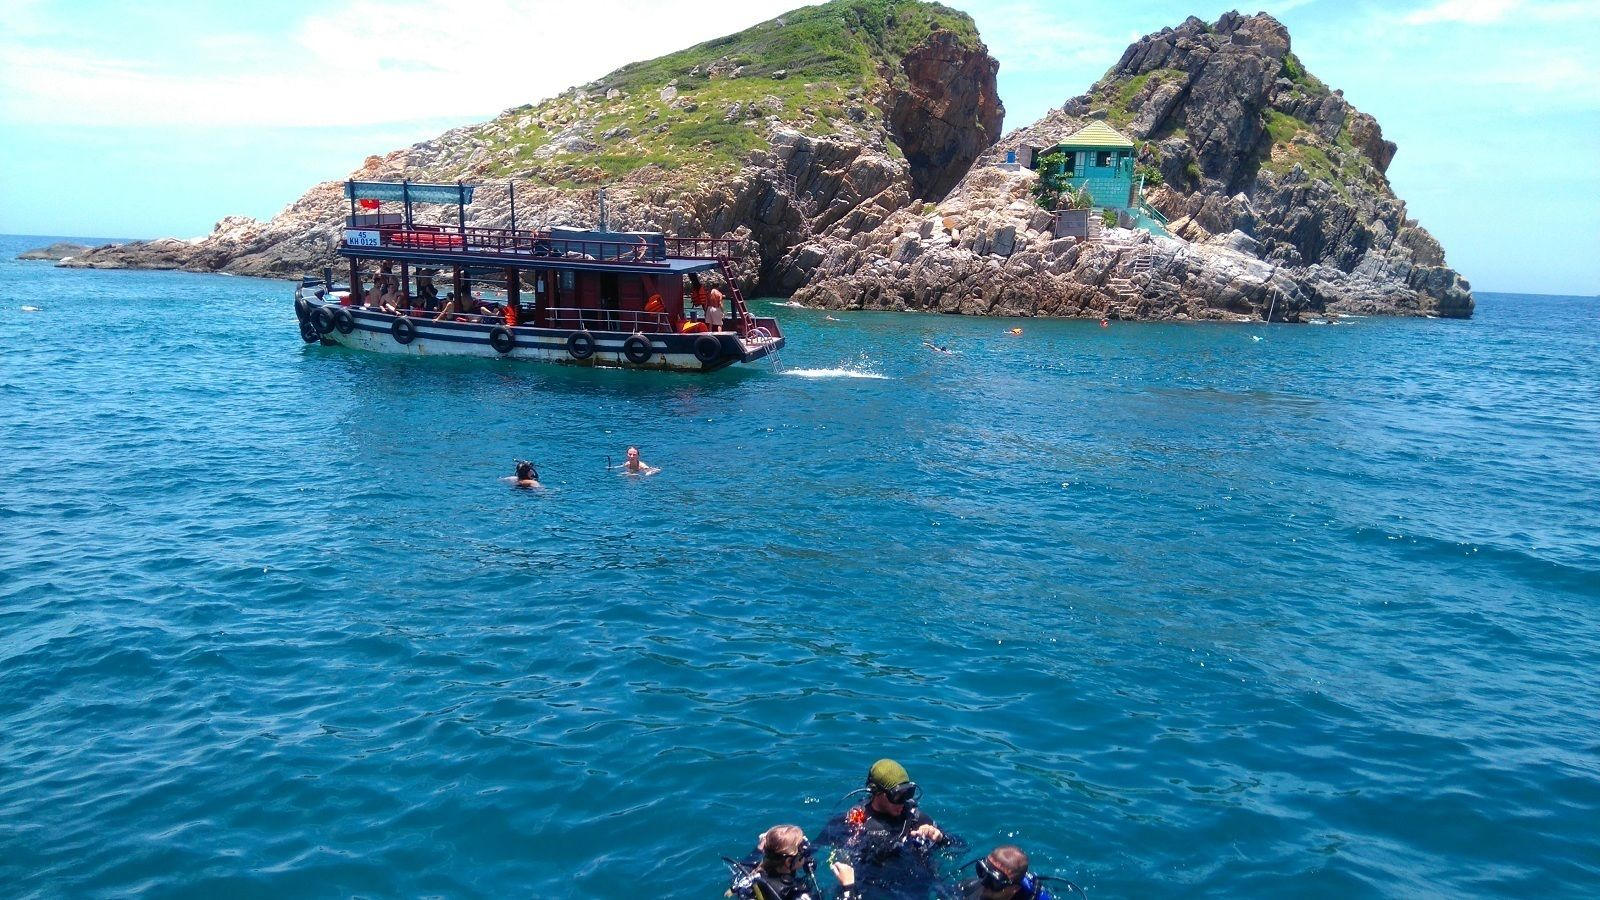 Snorkelers and divers near boat off the coast of Nha Trang